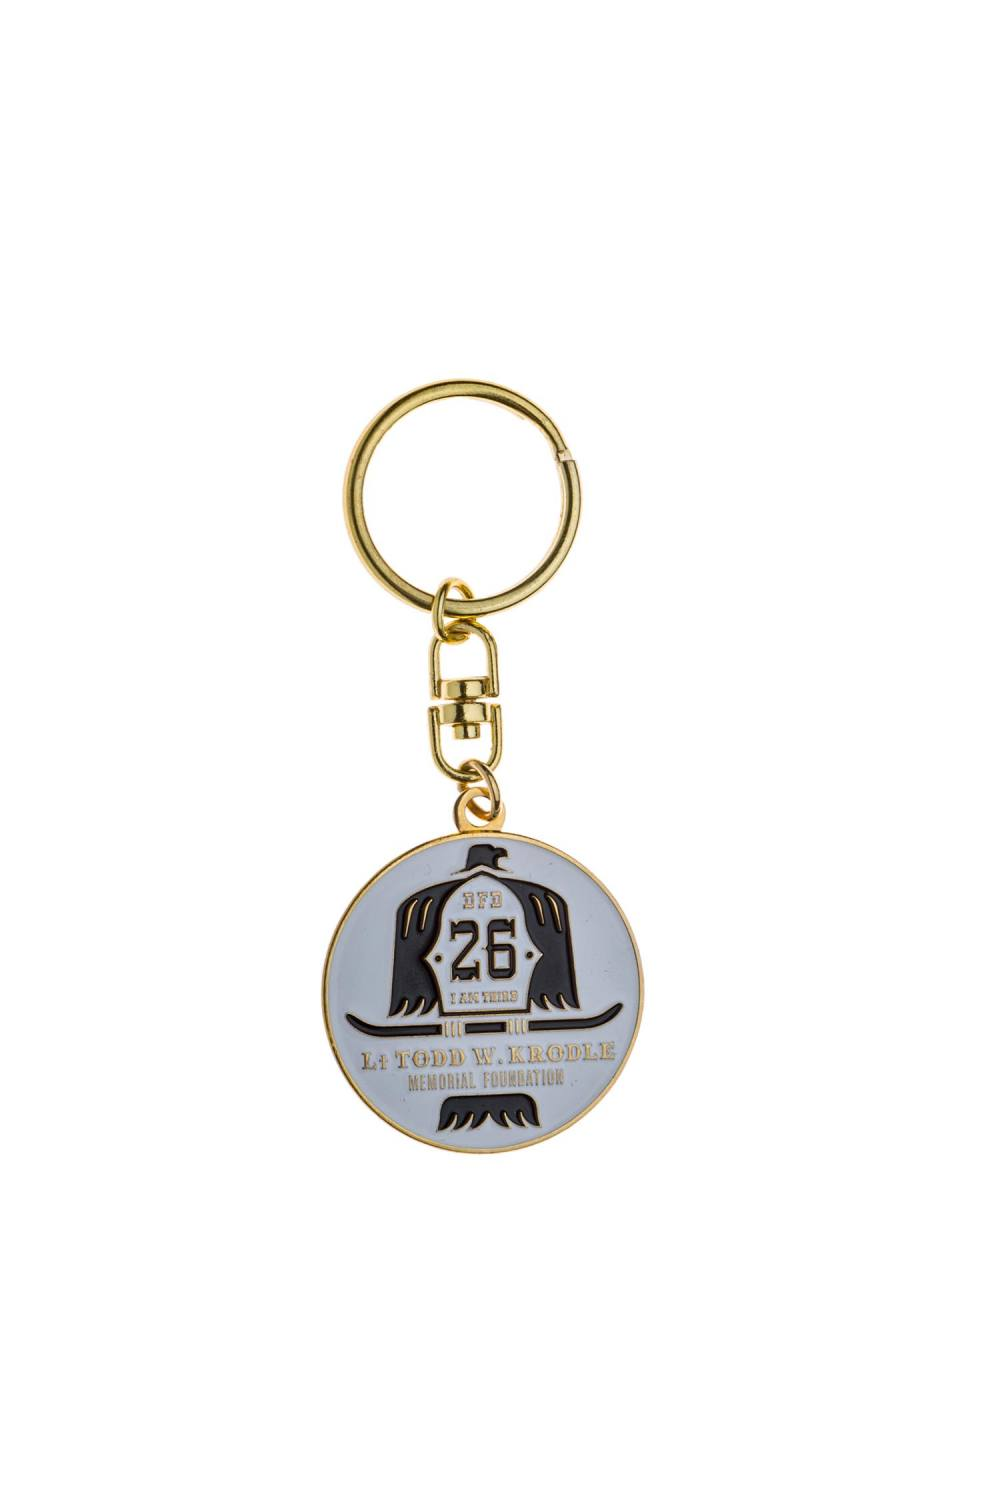 Metal Keychains - Fire & Police Depts | The Emblem Authority